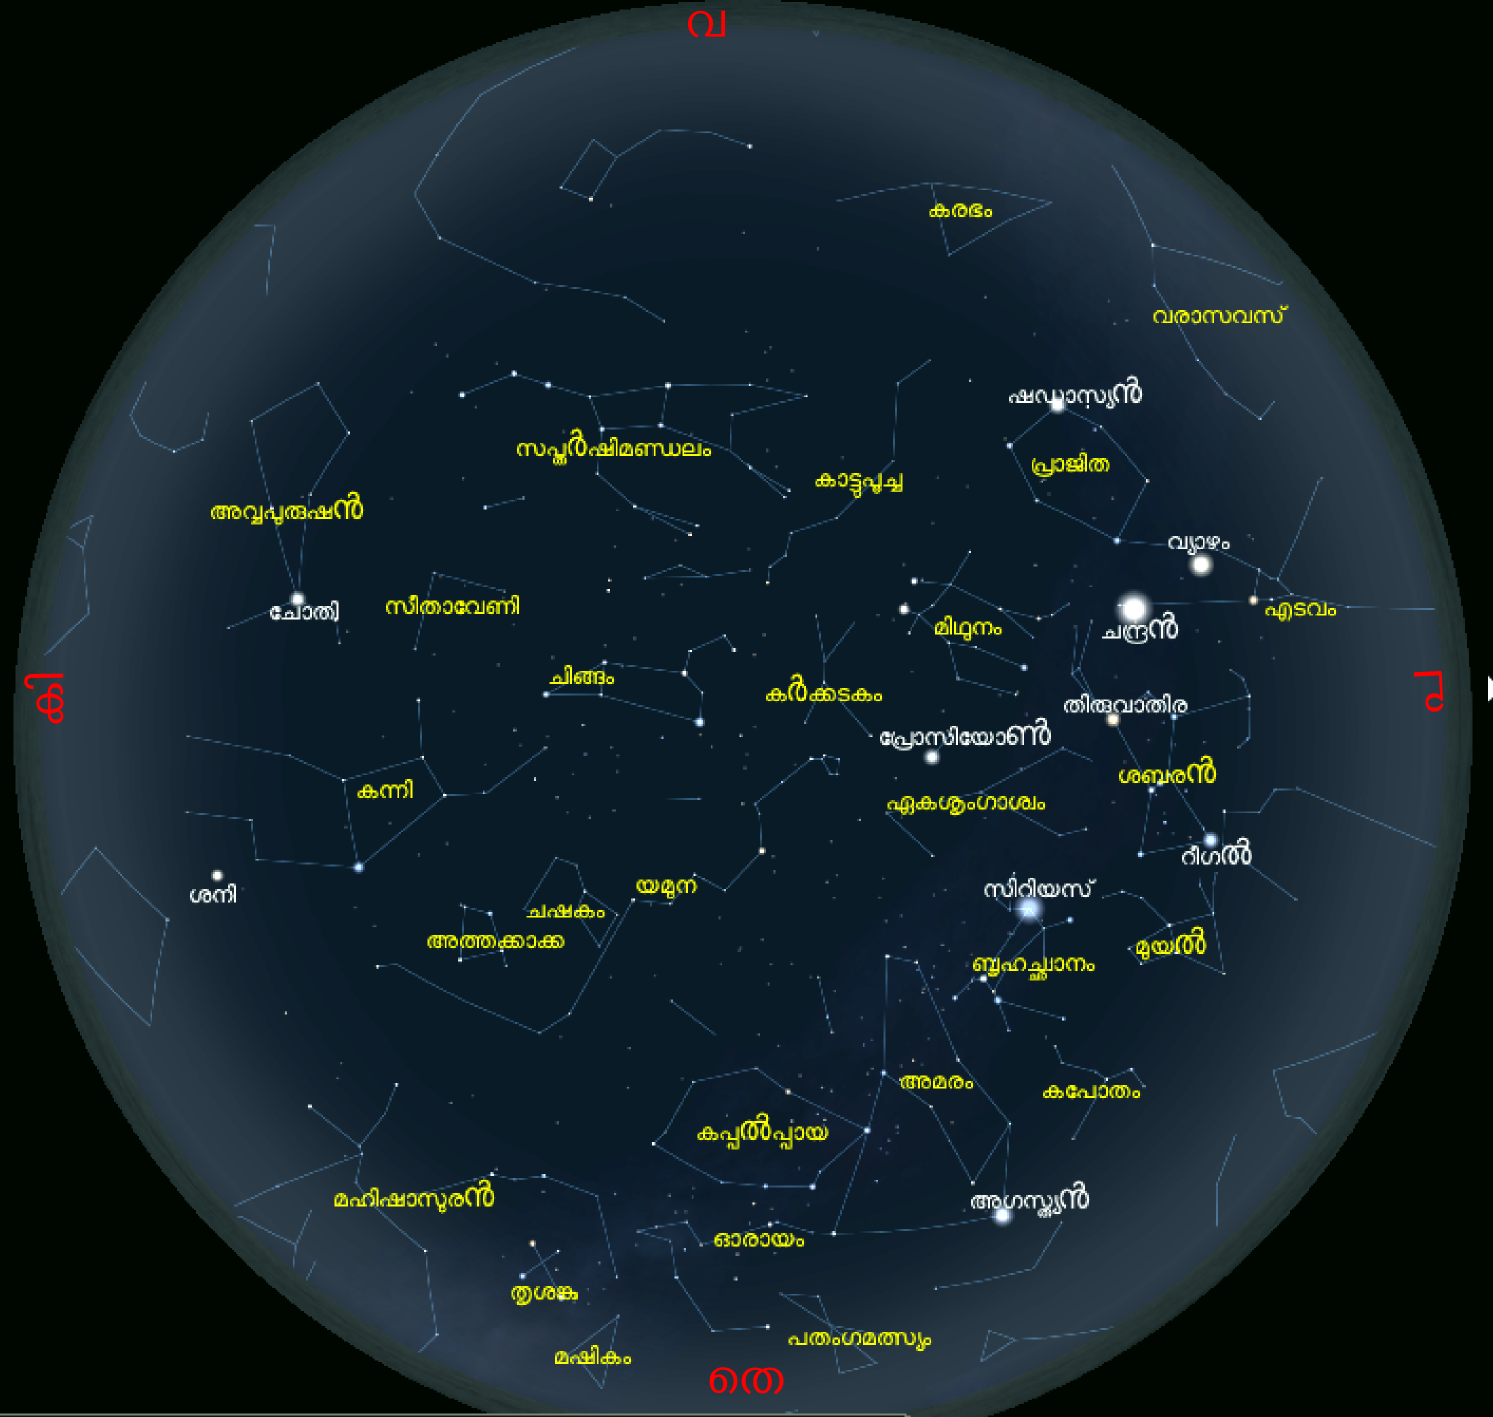 File:Star chart 2013 april.png.